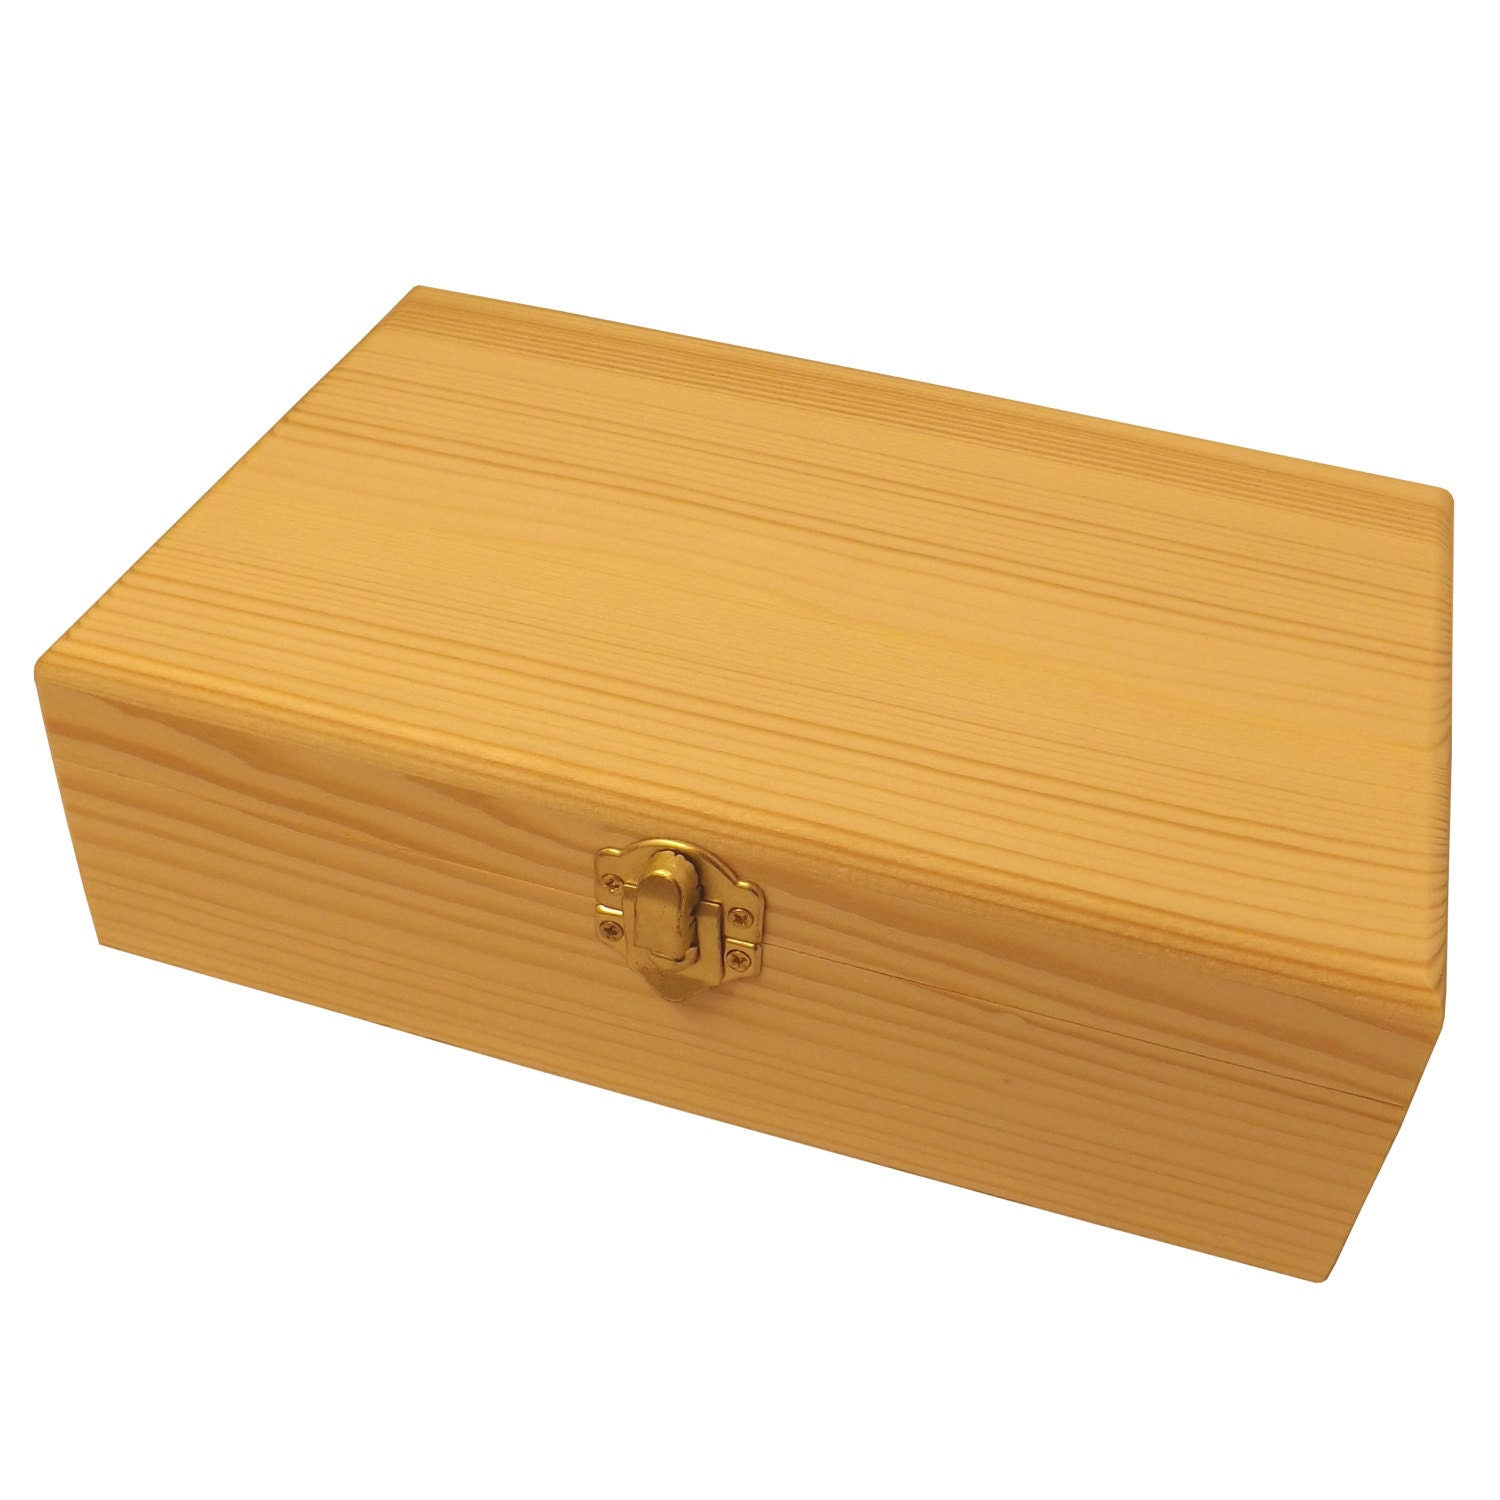 Large Unfinished Wood Box with Hinged Lid Crafts Wooden ...  |Large Unfinished Wooden Boxes